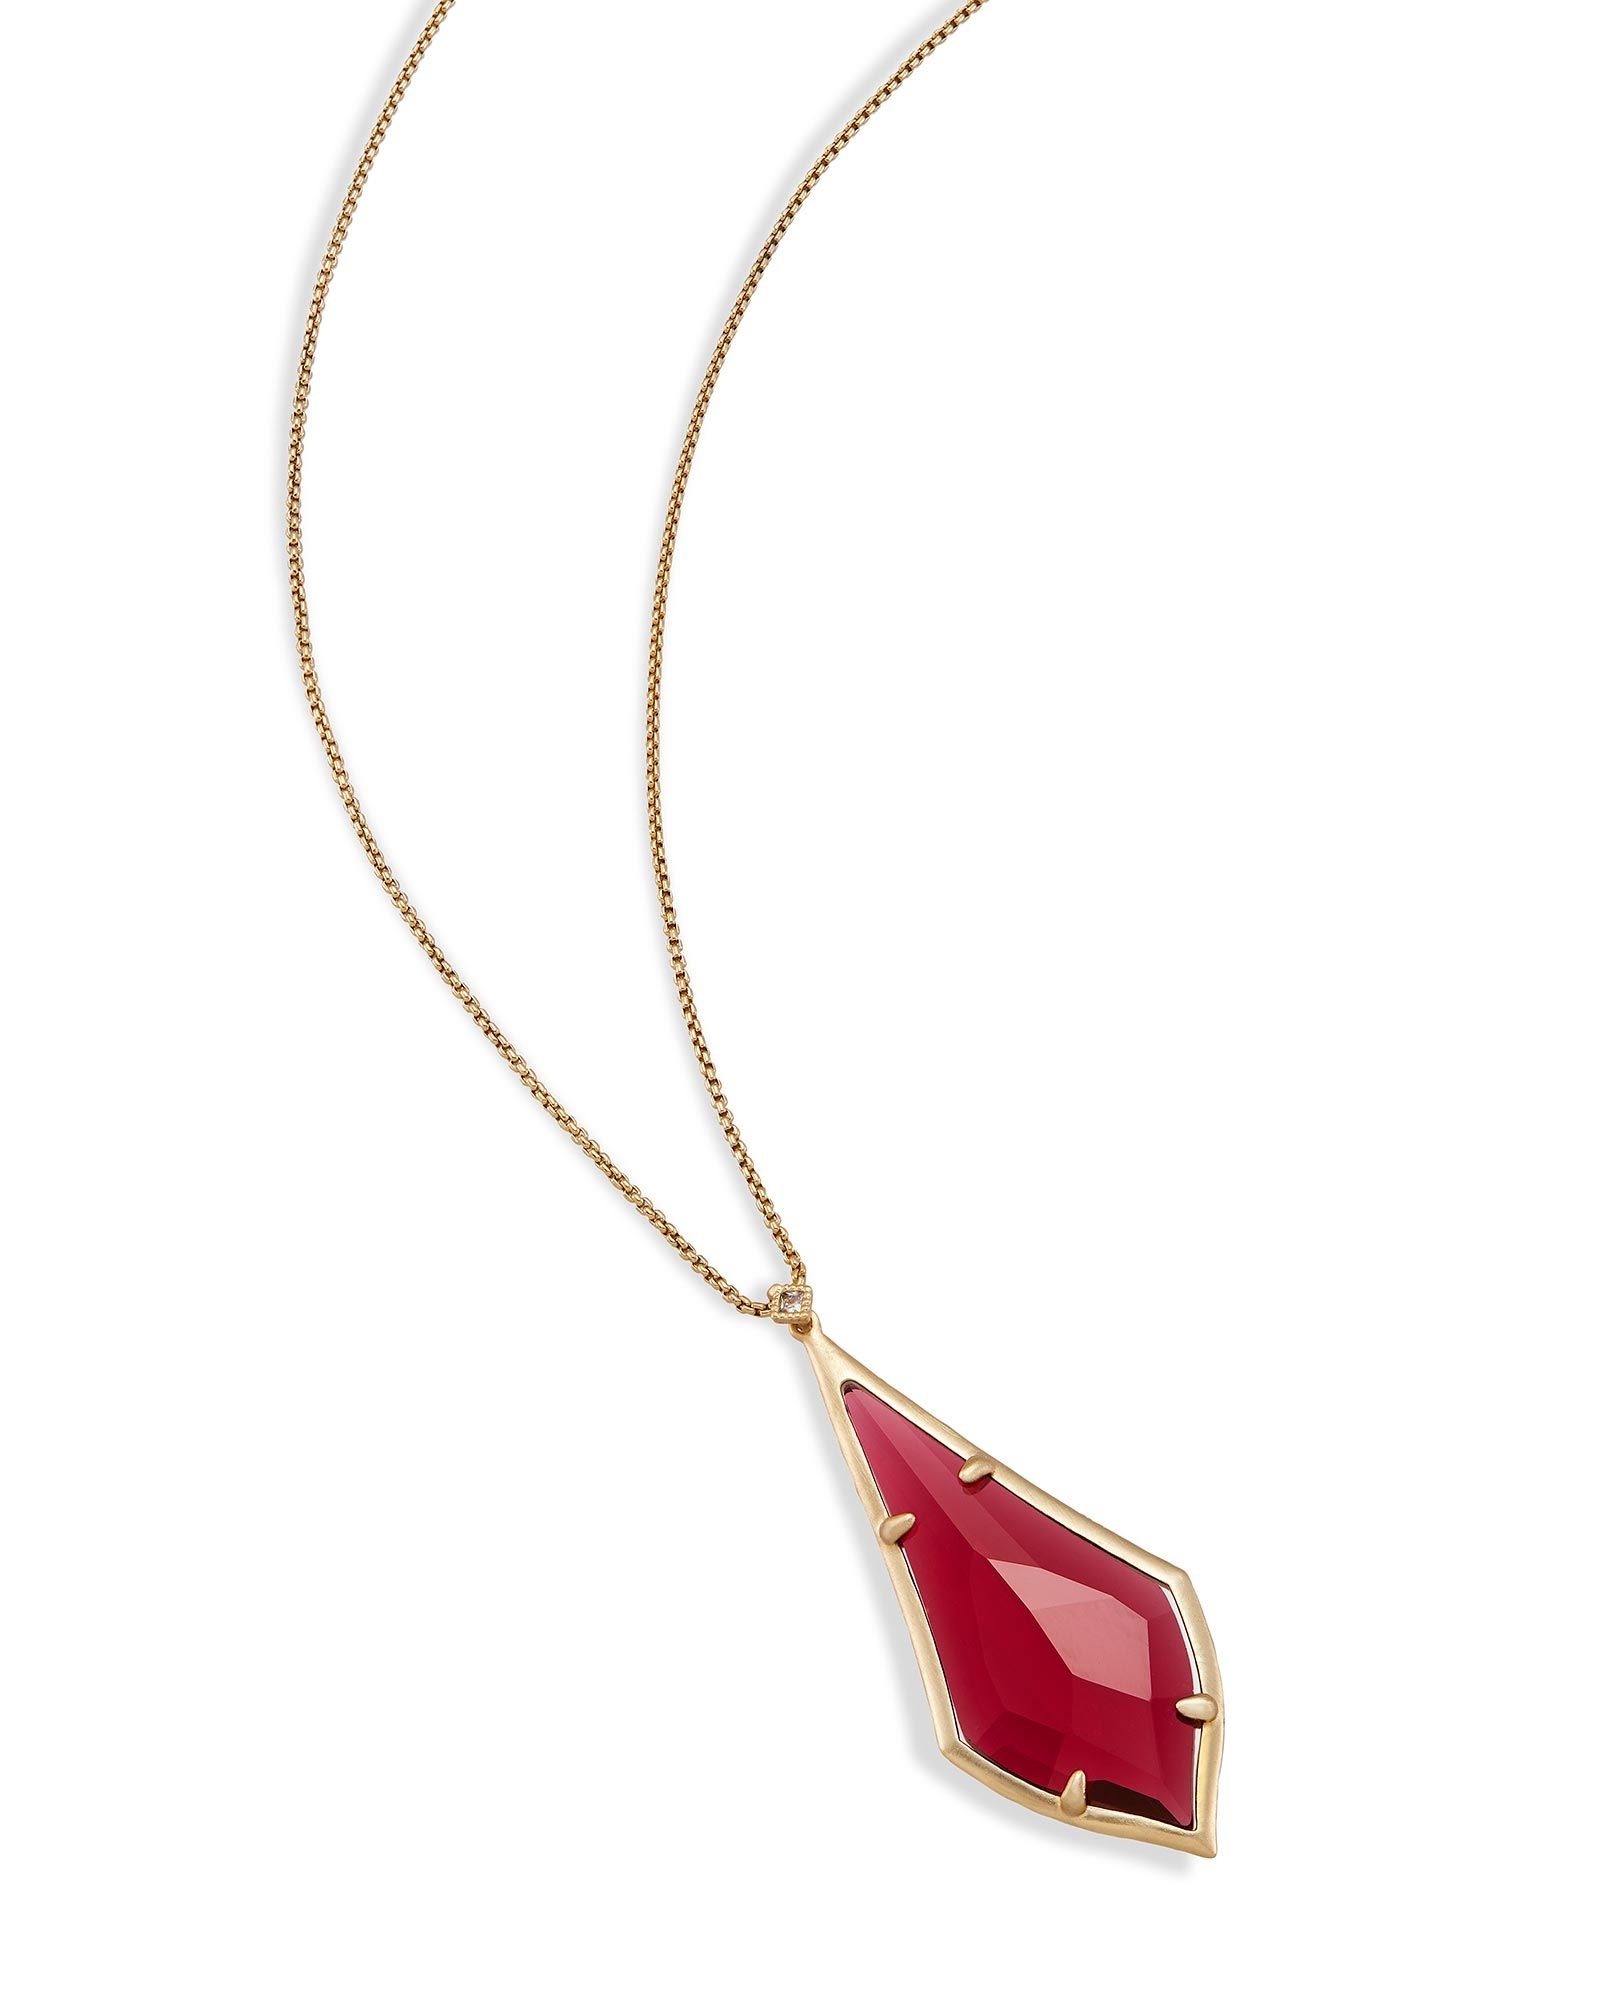 Shop brass long pendant necklaces at kendra scott with an elongated